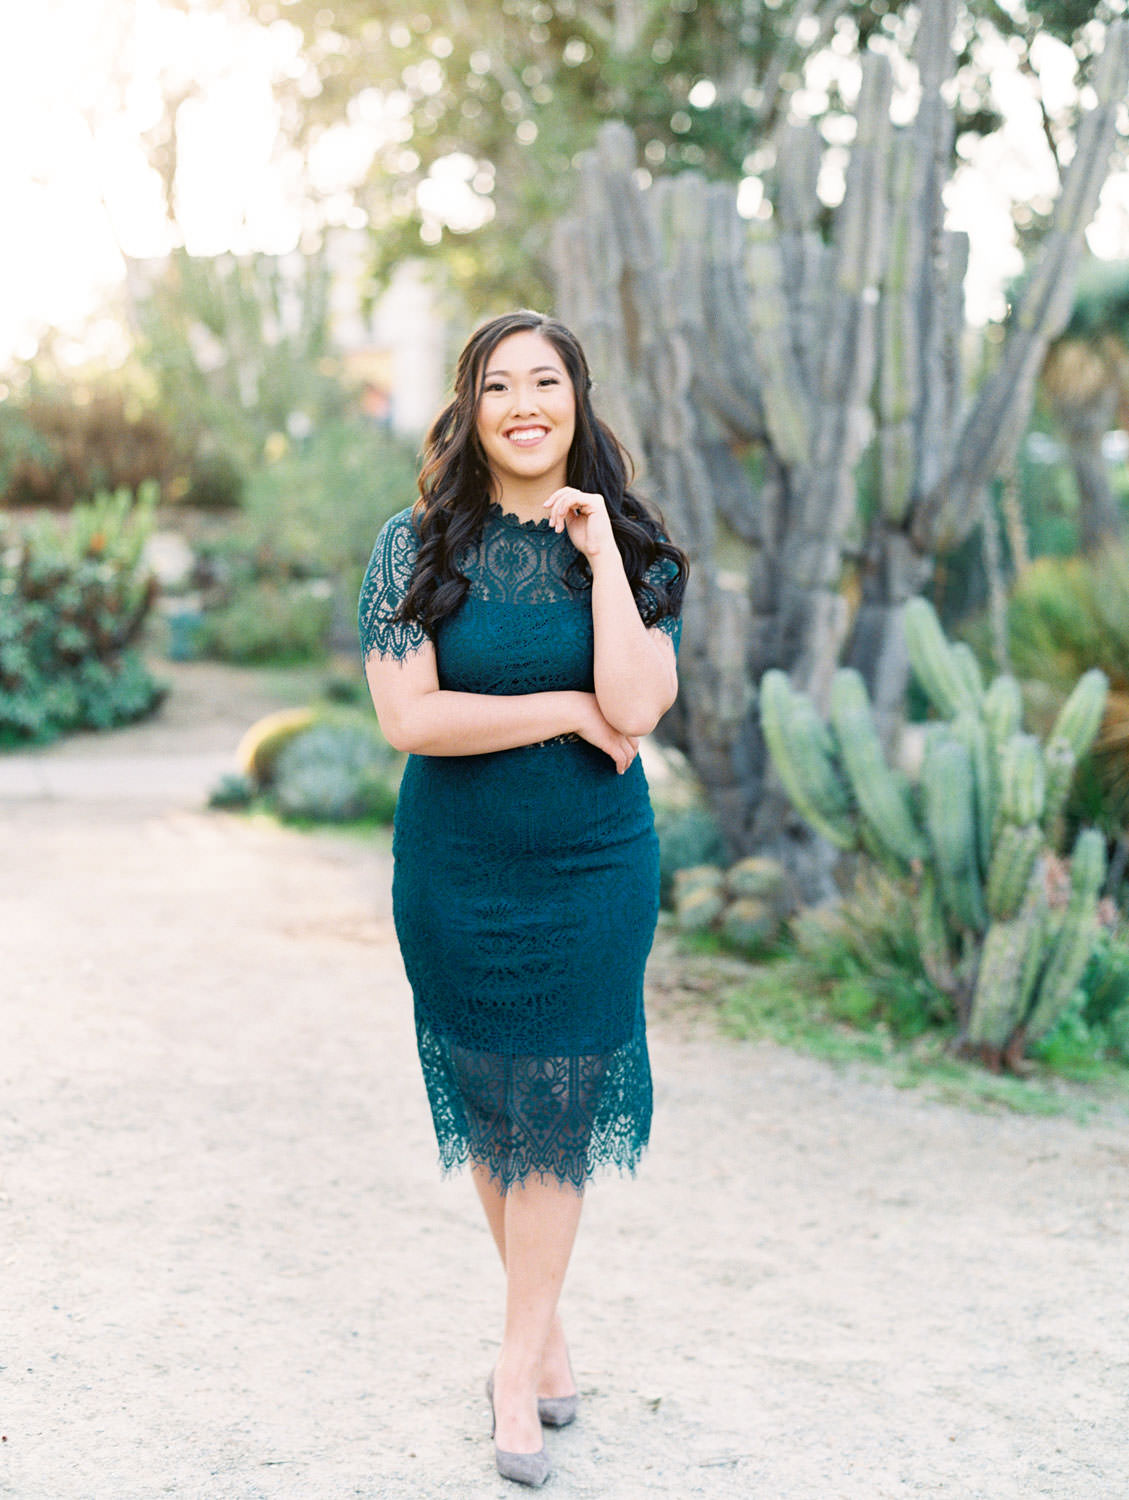 Bride wearing dark teal lace cut dress with curled hair and soft makeup with grey pumps, Balboa Park cactus garden engagement film photos by Cavin Elizabeth Photography